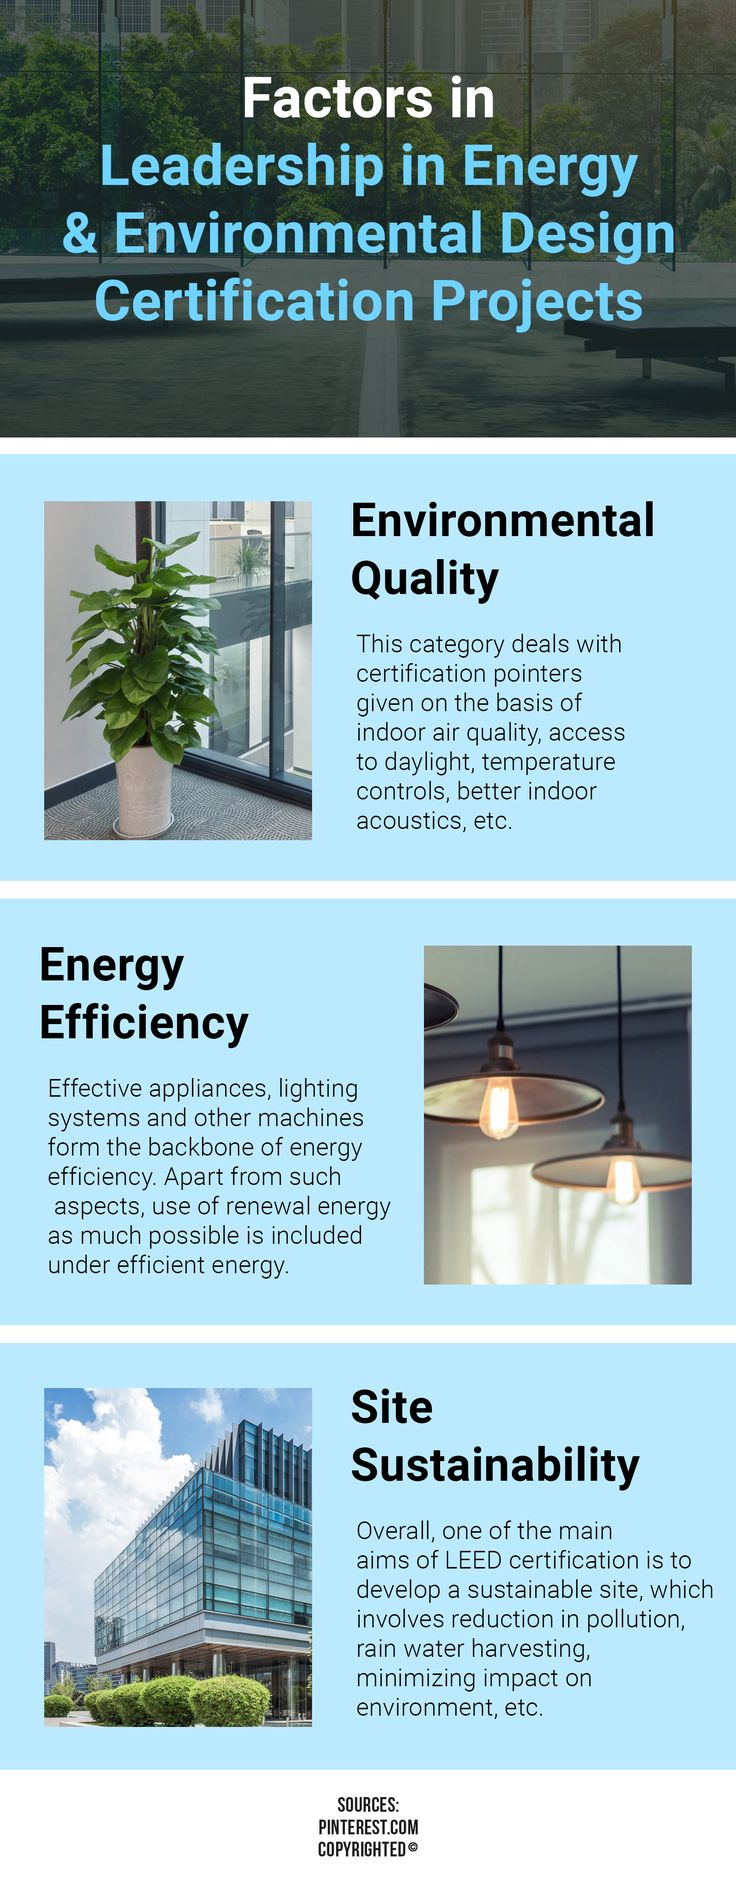 What Do the Materials and Resources Factors Cover in LEED Certification?  The category of materials and resources involves sustainable use of any materials used along with a careful utilizing of the resources. The materials and products also should be recyclable and reused to target waste reduction.